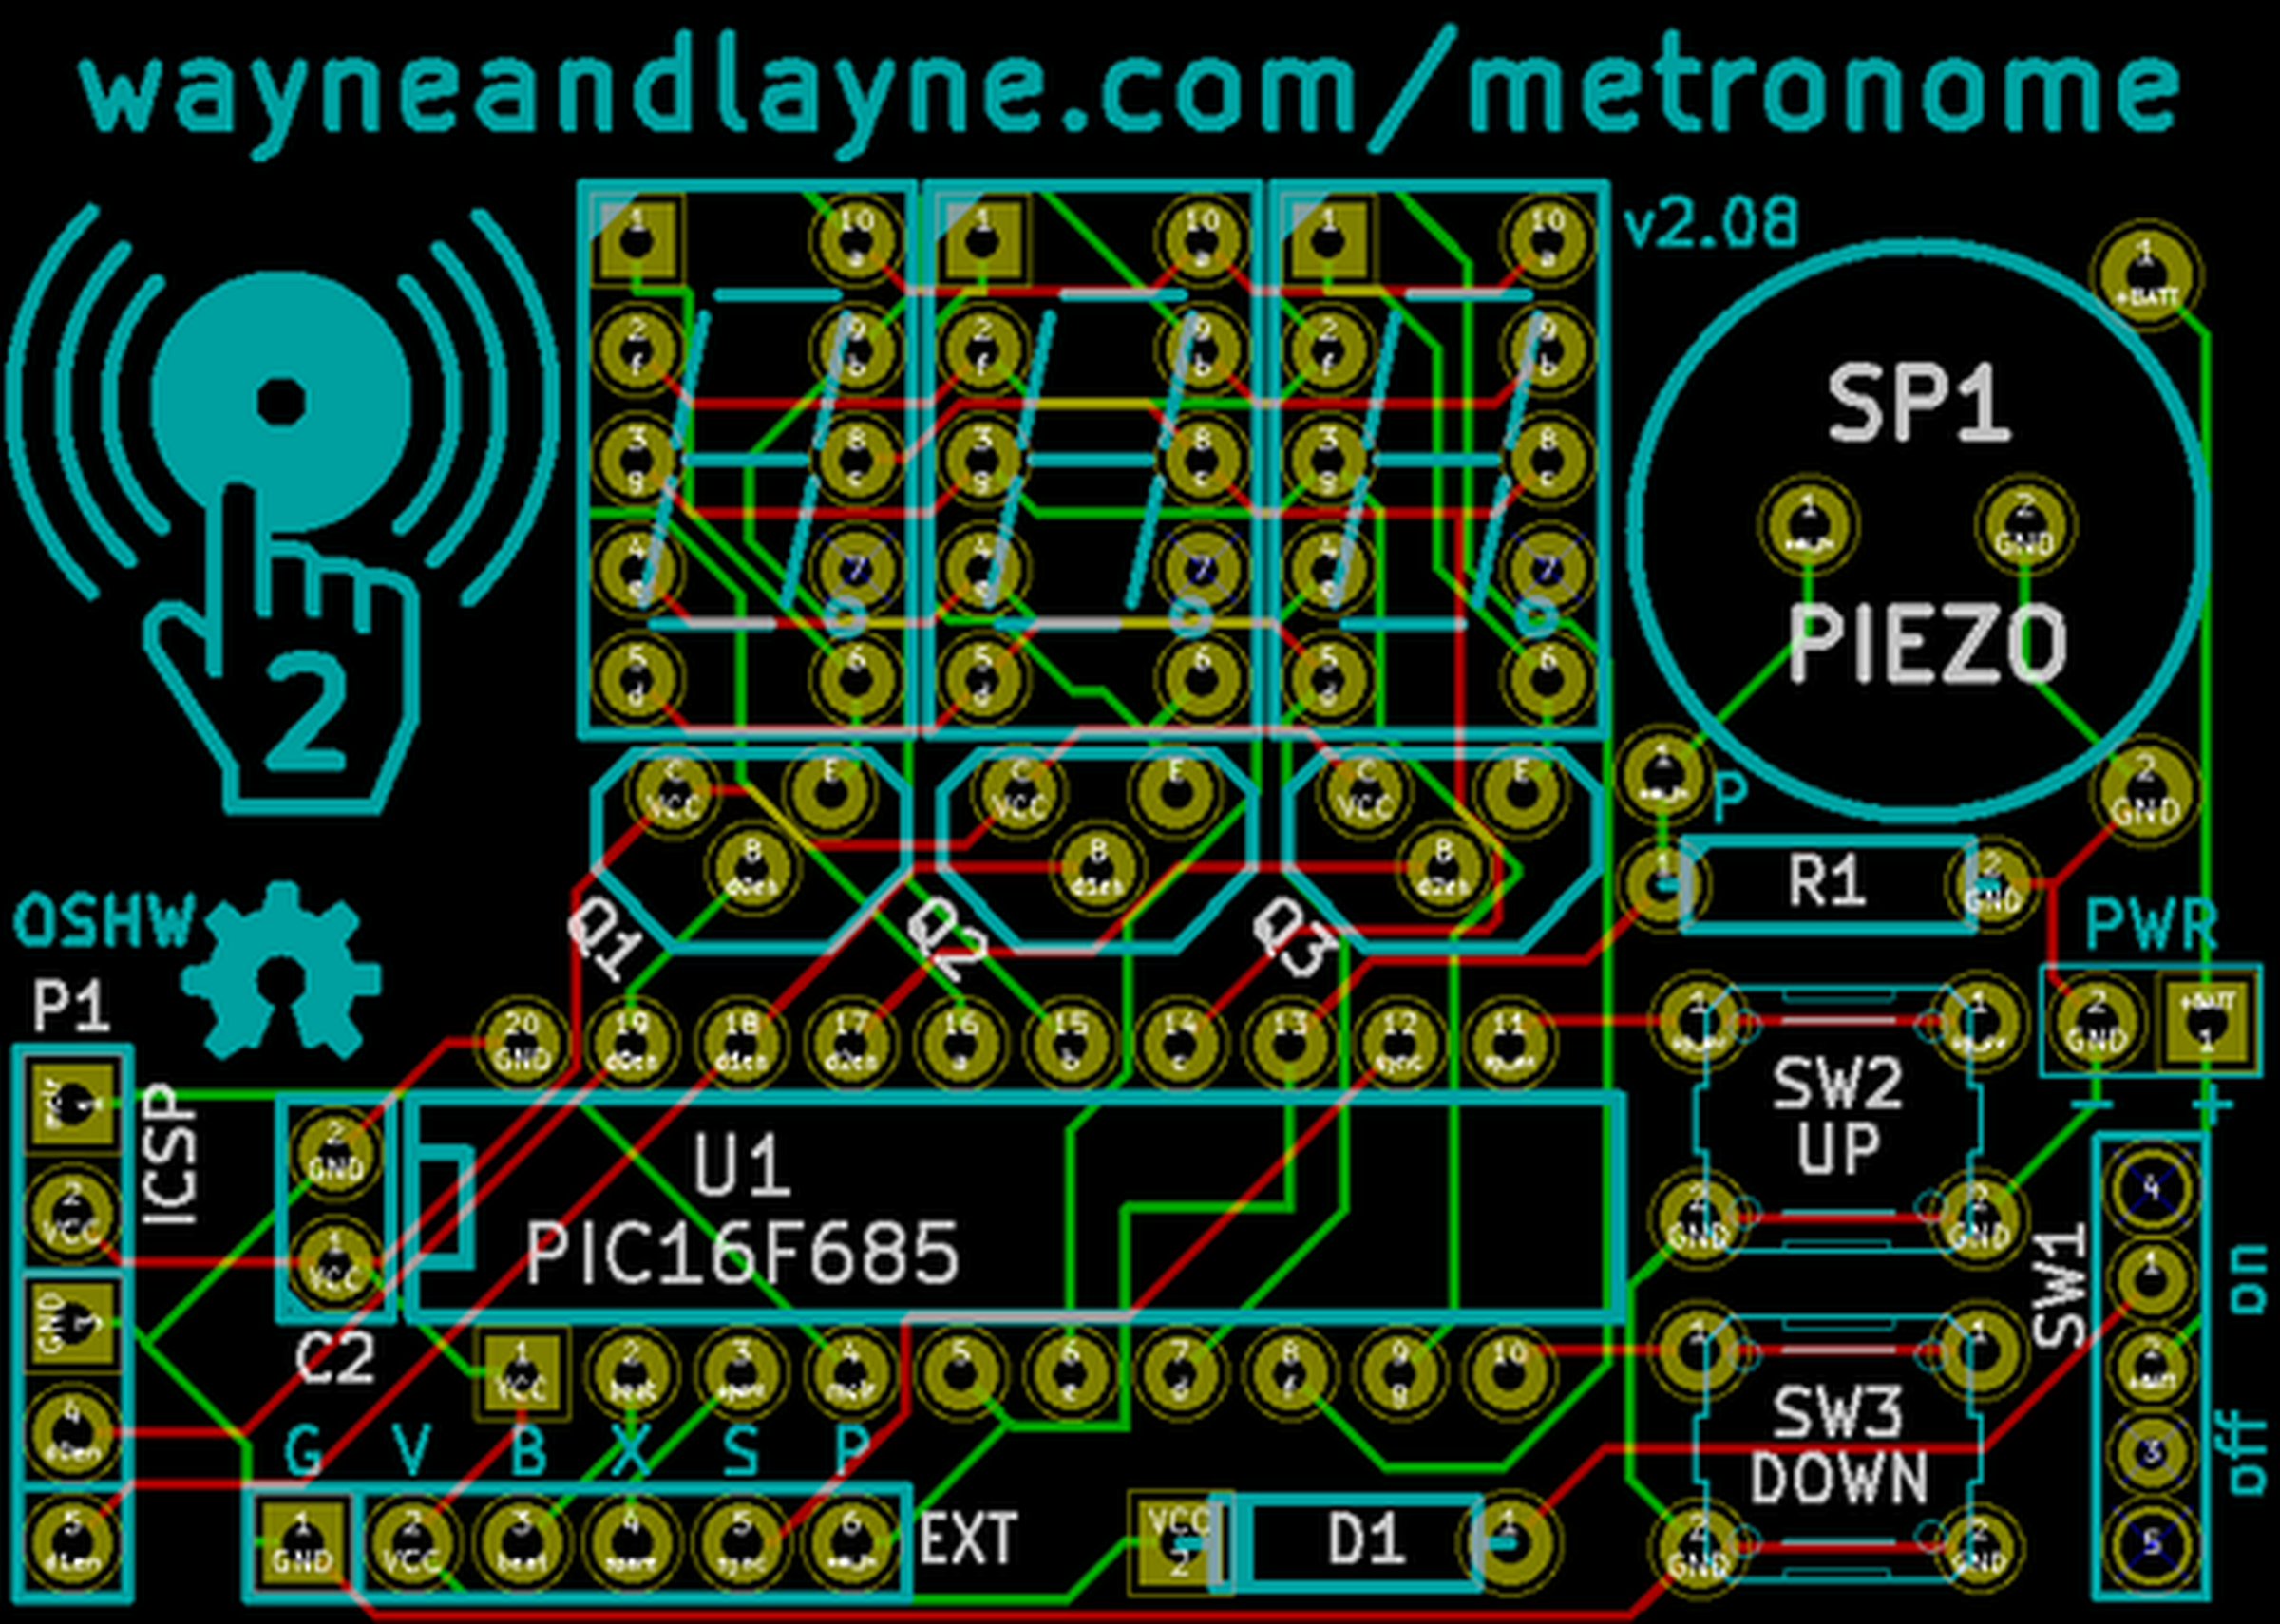 Tap Tempo Metronome From Wayne And Layne Llc On Tindie Build A Blinky Smt Kit 3